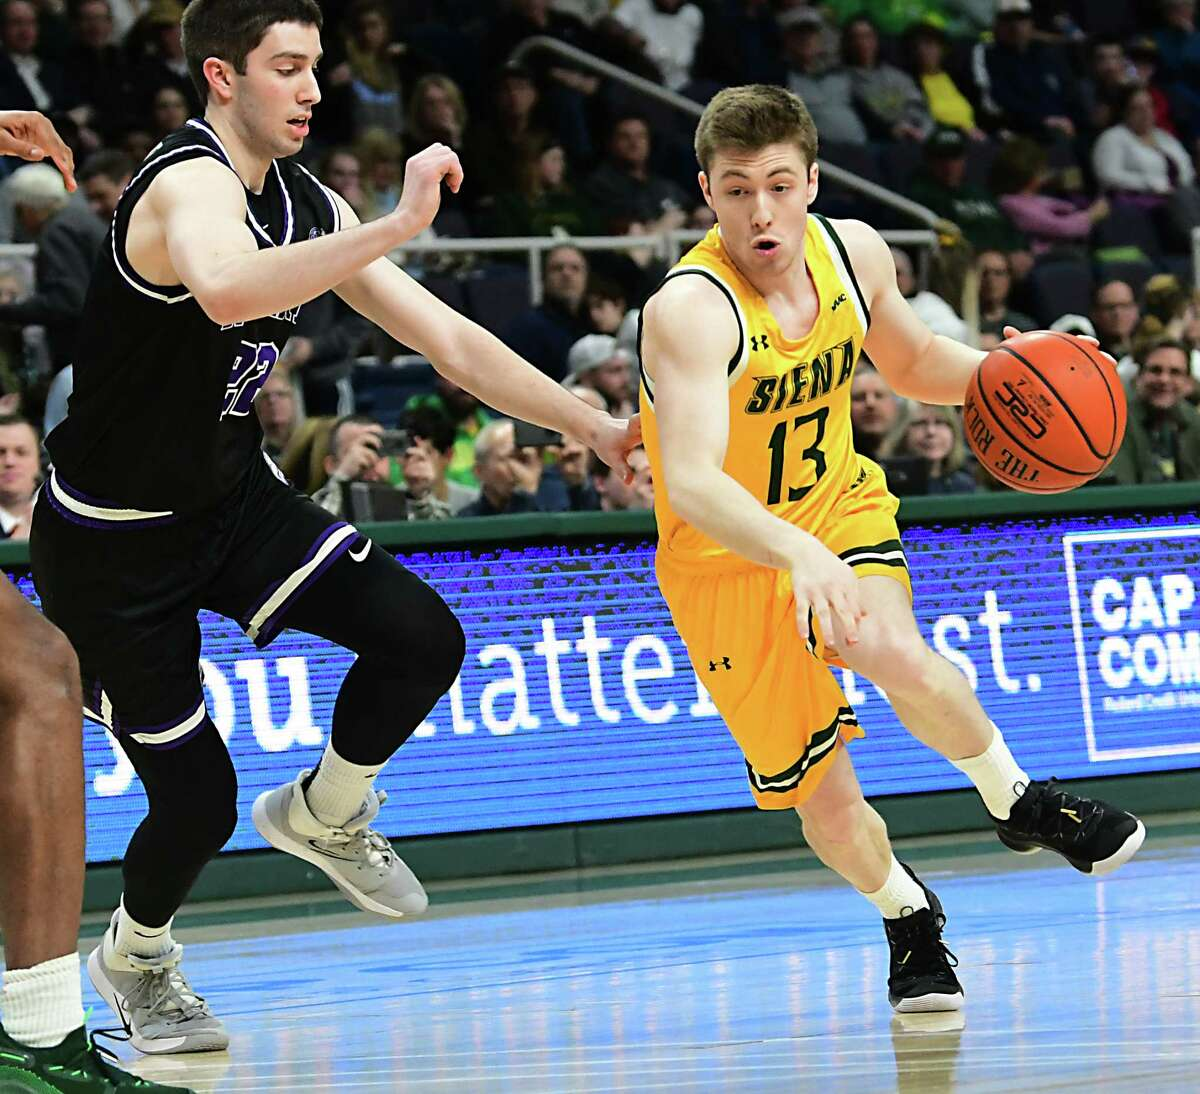 Siena's Ben Diamond makes a move to the basket during a game against Niagara at the Times Union Center on Wednesday, March 4, 2020 in Albany, N.Y. Diamond was honored during Senior night and started for the Saints. (Lori Van Buren/Times Union)